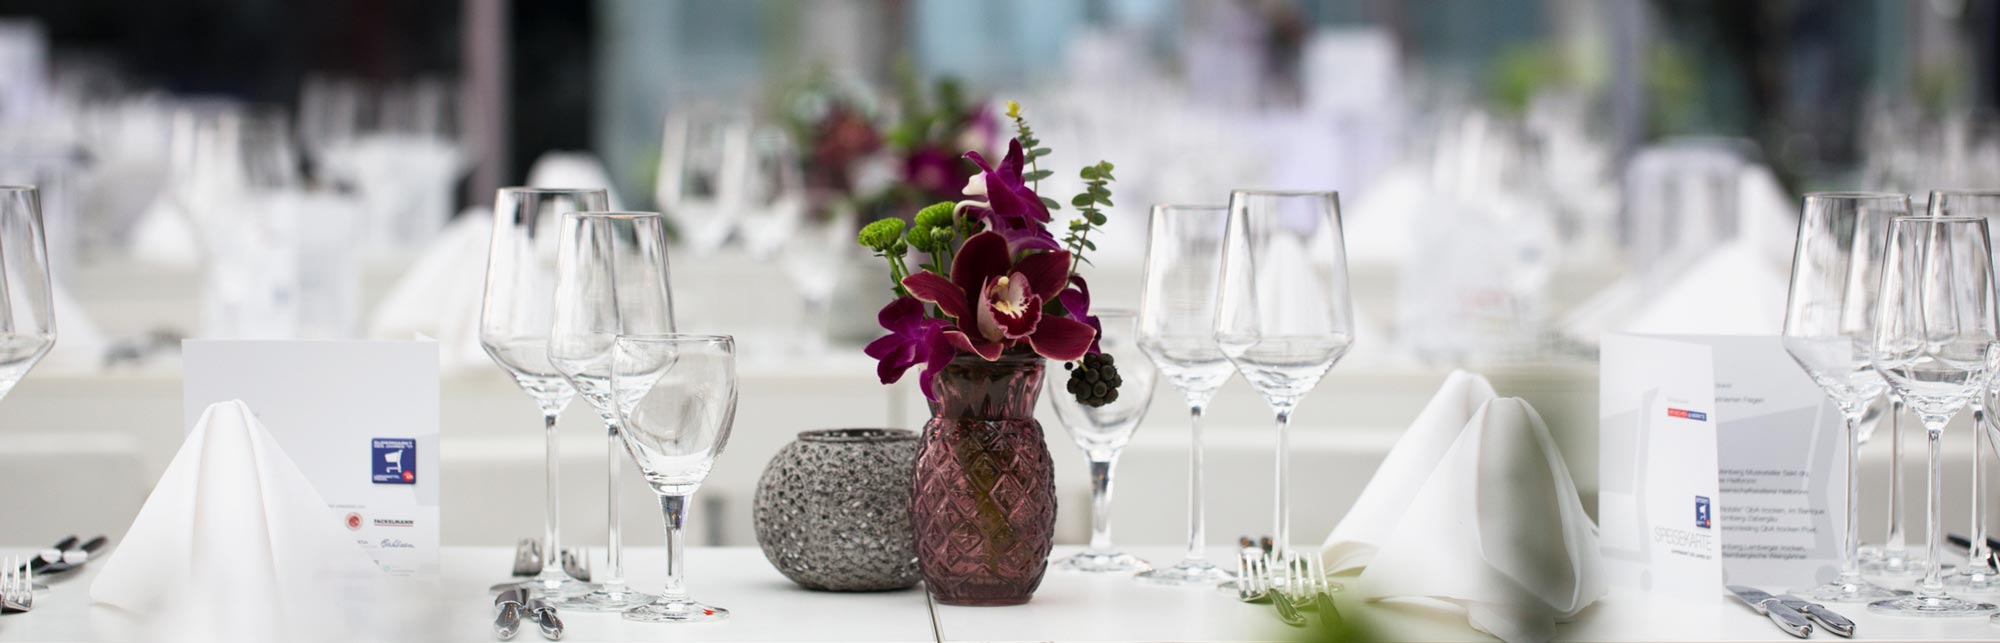 PROFIMIET Non-Food-Catering Produkte Dekoration Tablesetting